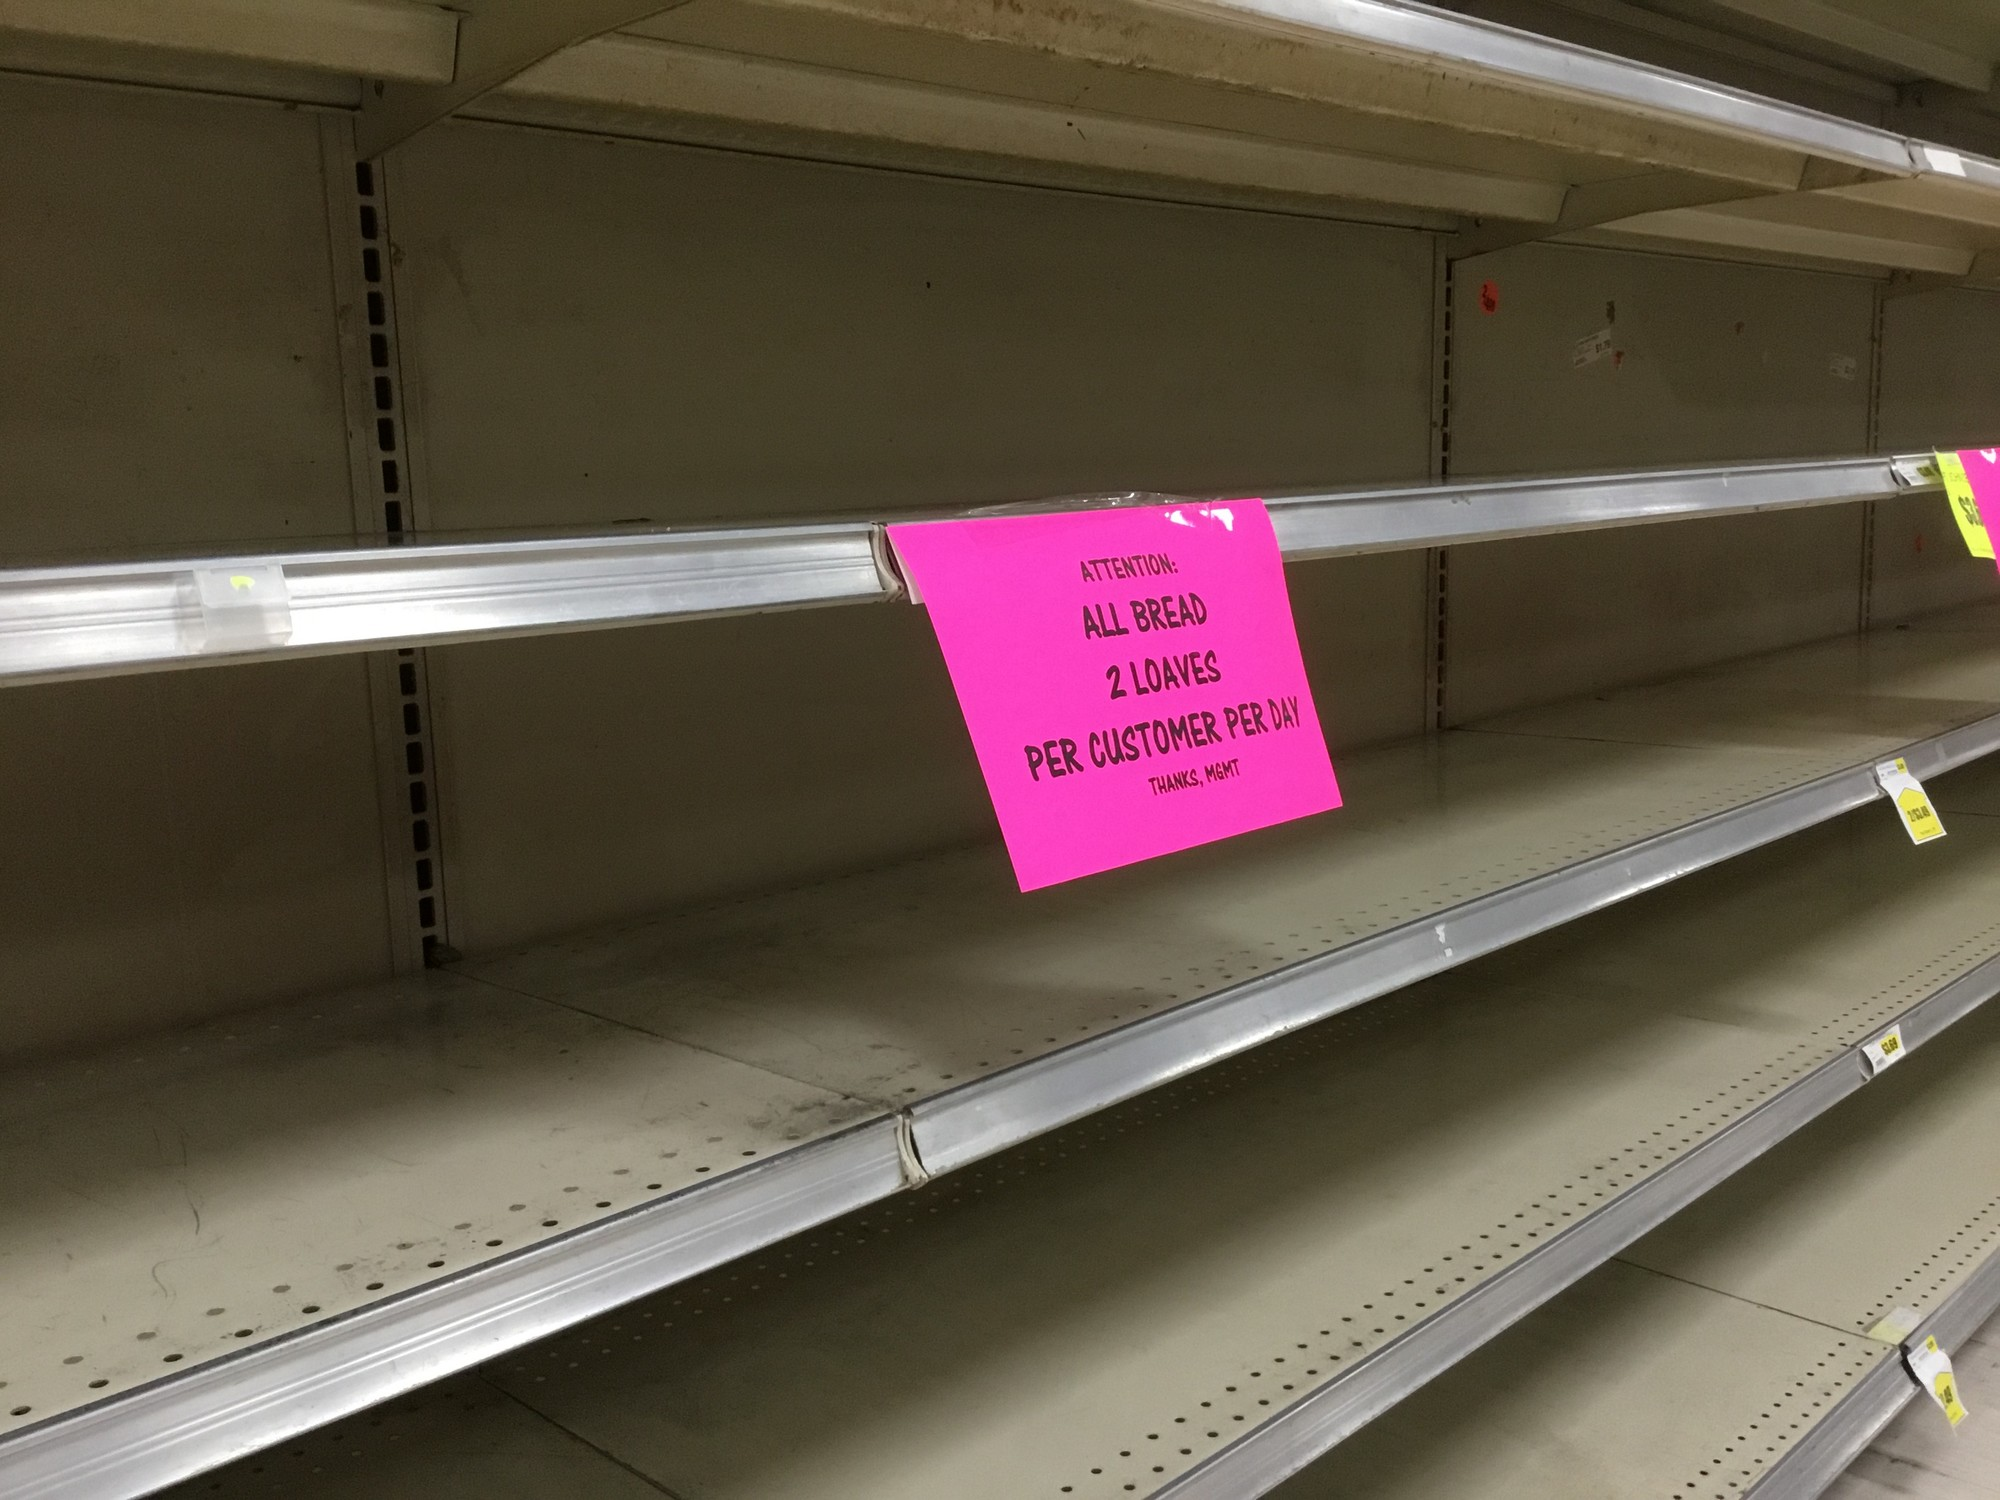 The system to ration bread and water came from the experience of being open for the historic 1,000-year flood in 2015, Piggly Wiggly Store Operator Luther Jamison said. The aisle was empty on Friday, Sept. 14.